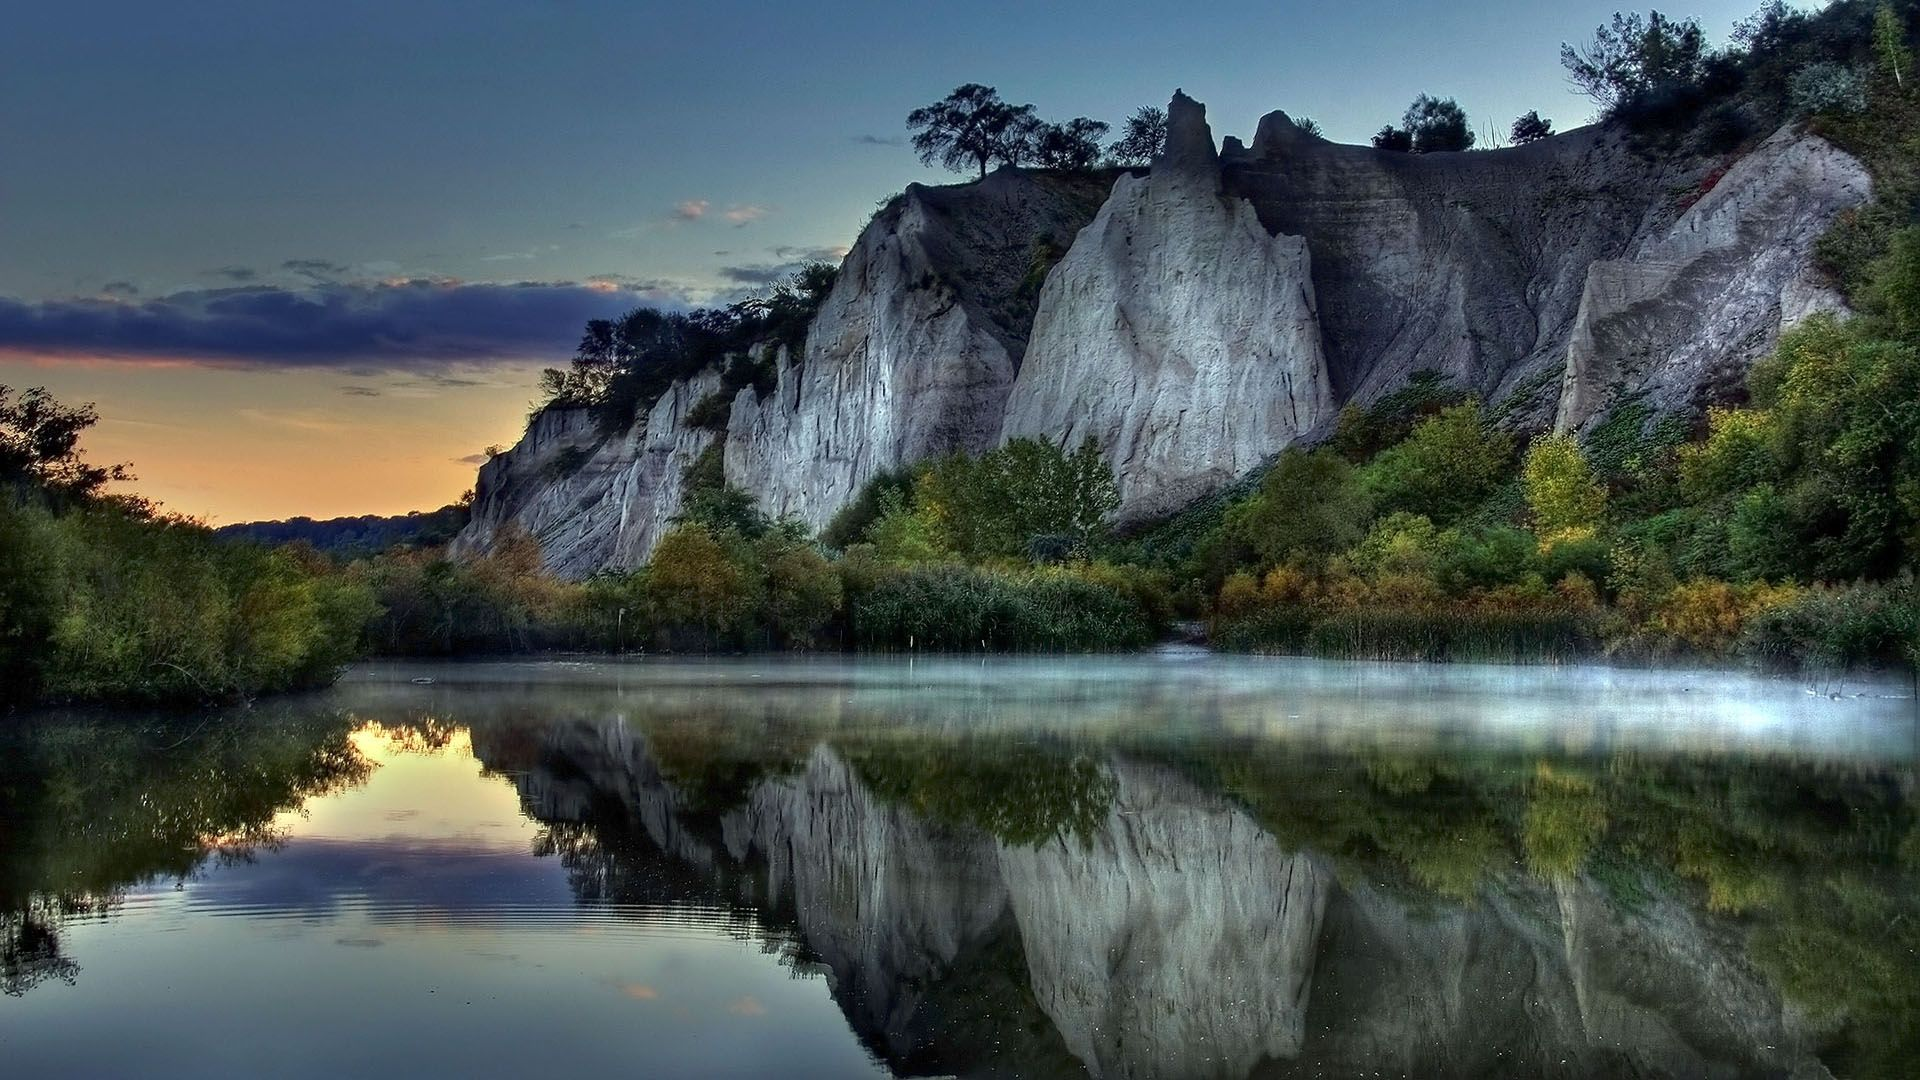 Hd wallpaper river - Full Hd Nature Wallpaper 1080p For Desktop With River And Hill Photo